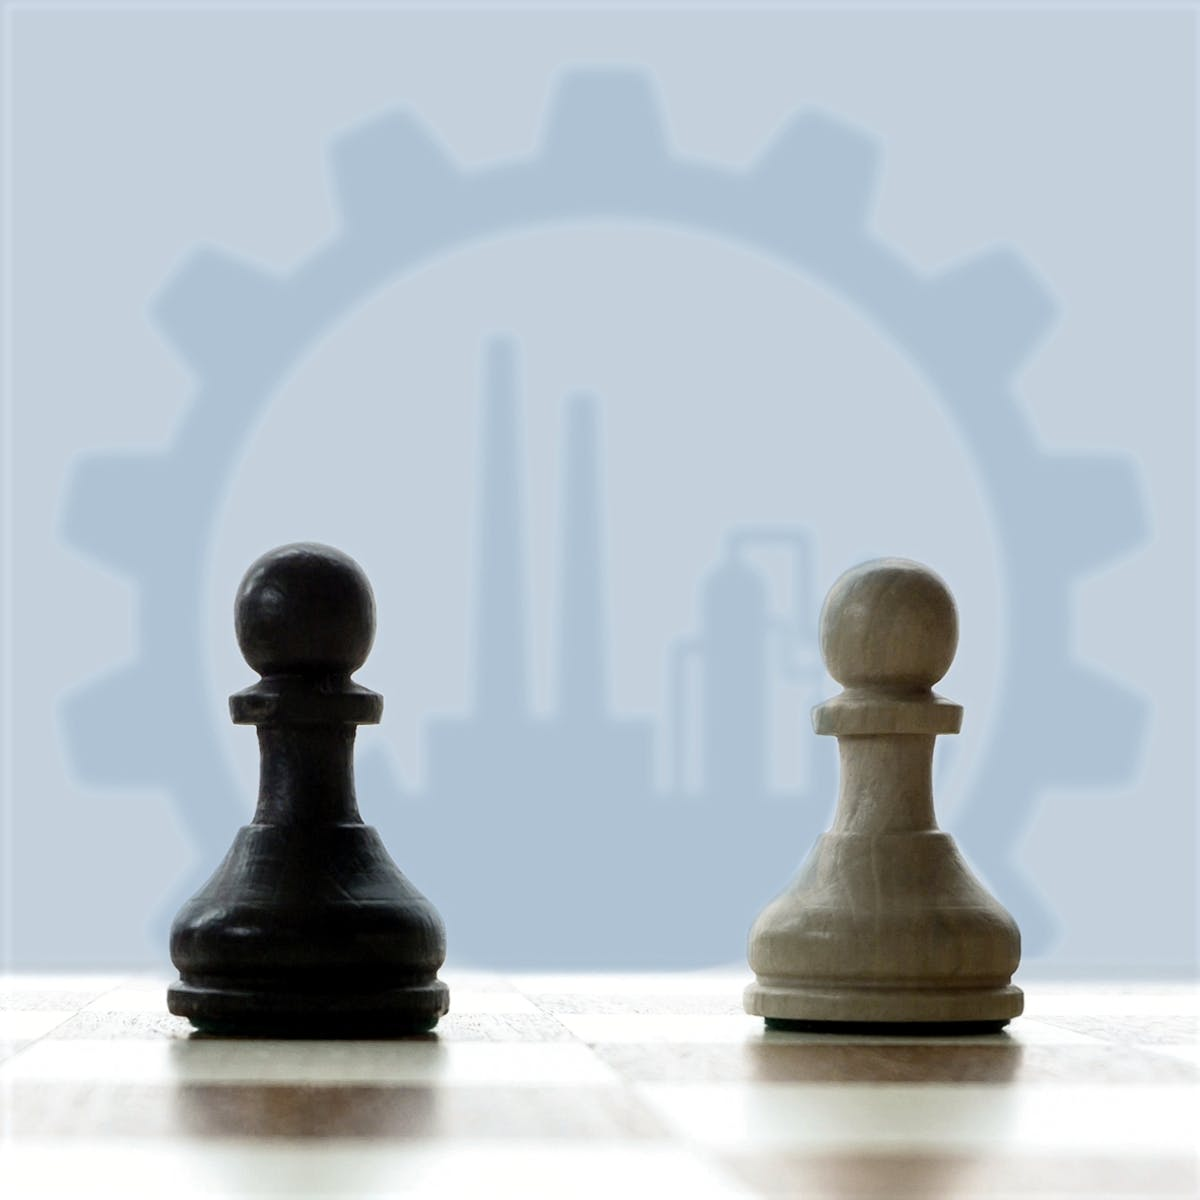 Industrial Organization: Strategy and Competition in Business